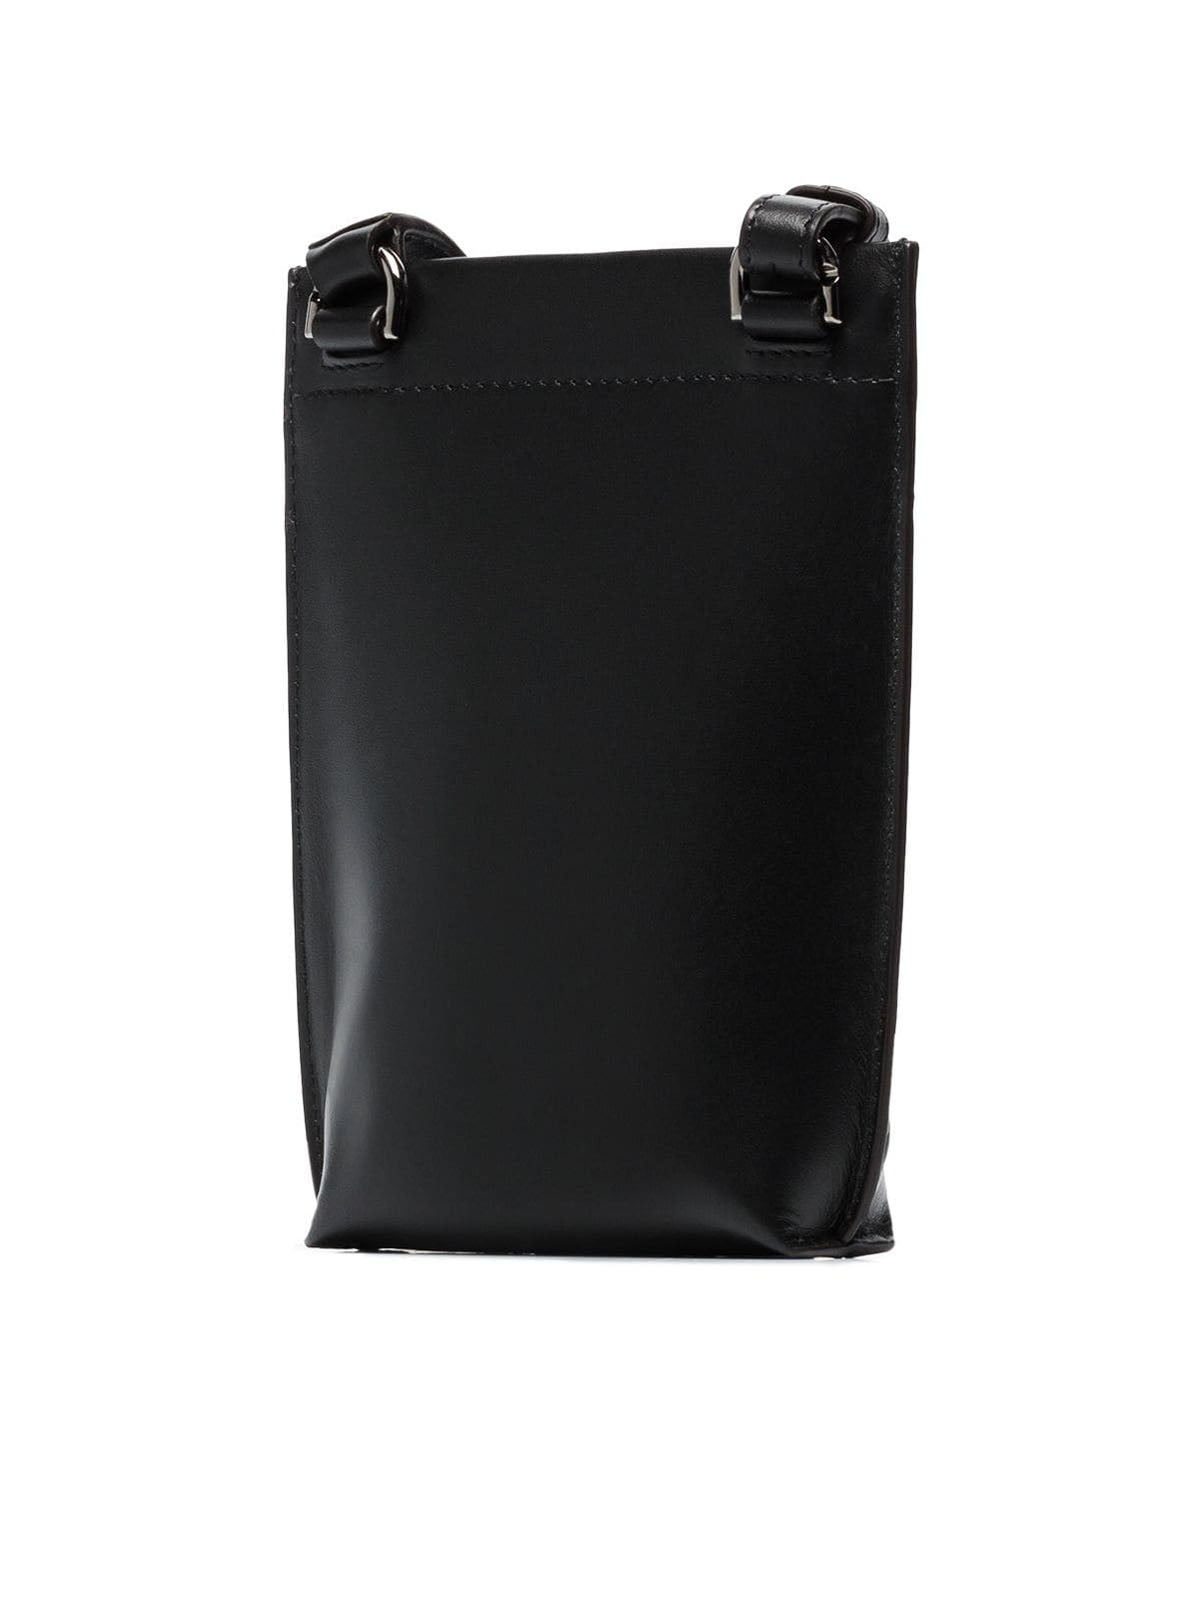 Antigona phone pouch bag